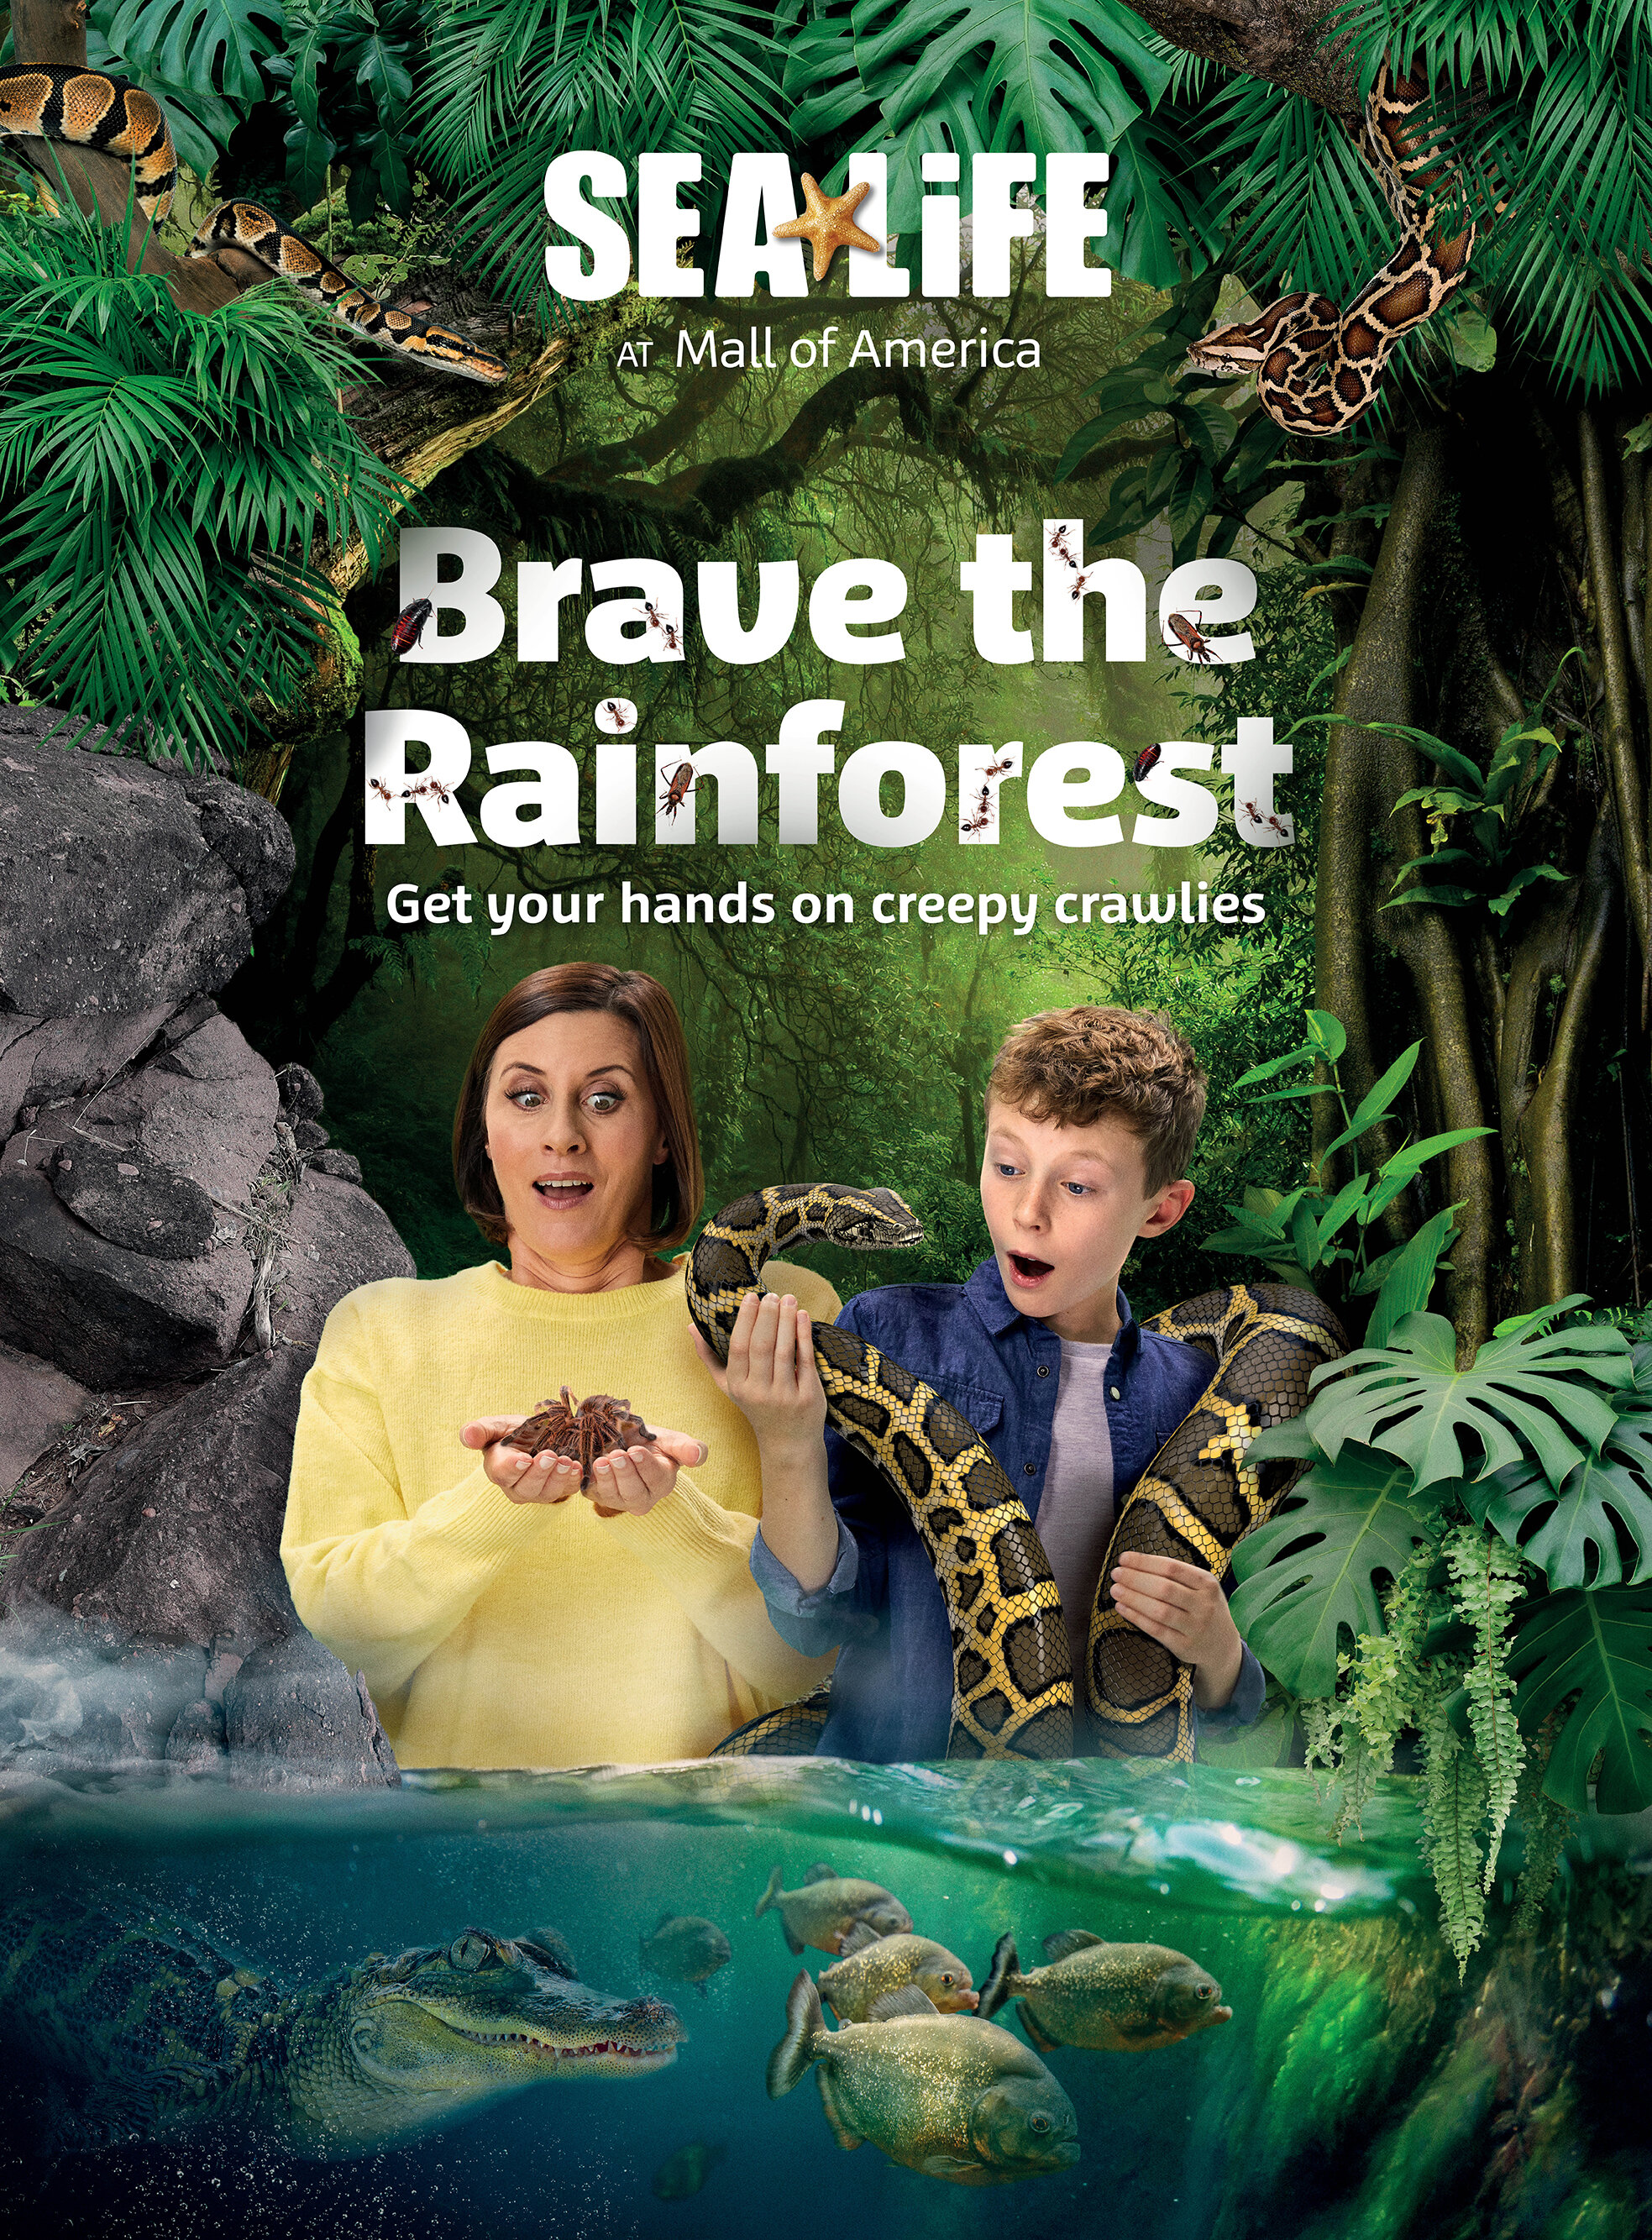 Rainforest environment was created with a series of stock photography. A CGI python was rendered and wrapped around the model.